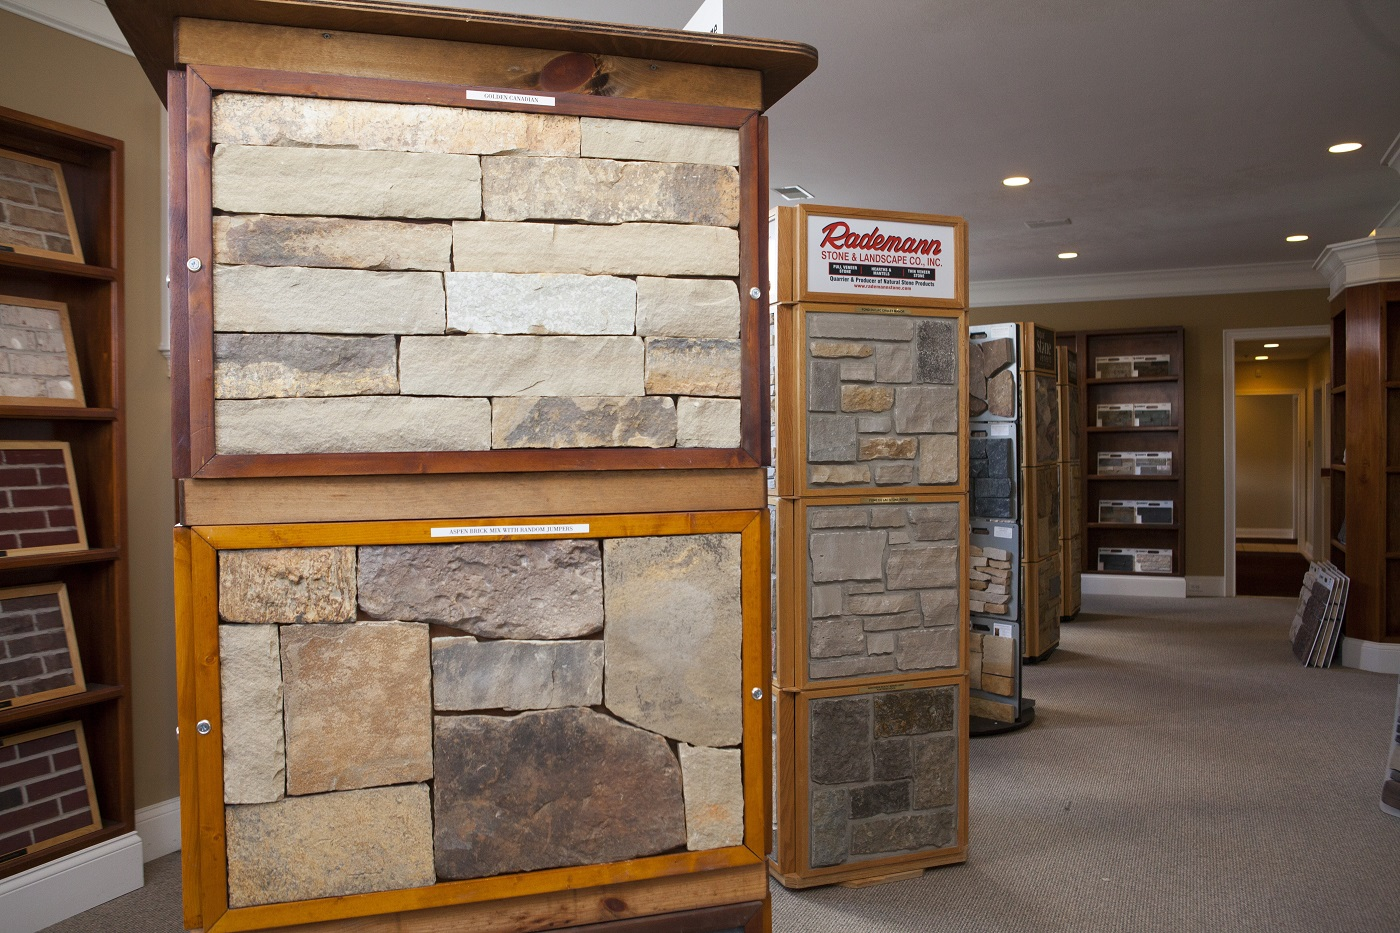 supplying Indiana with masonry and paver materials for over 45 years